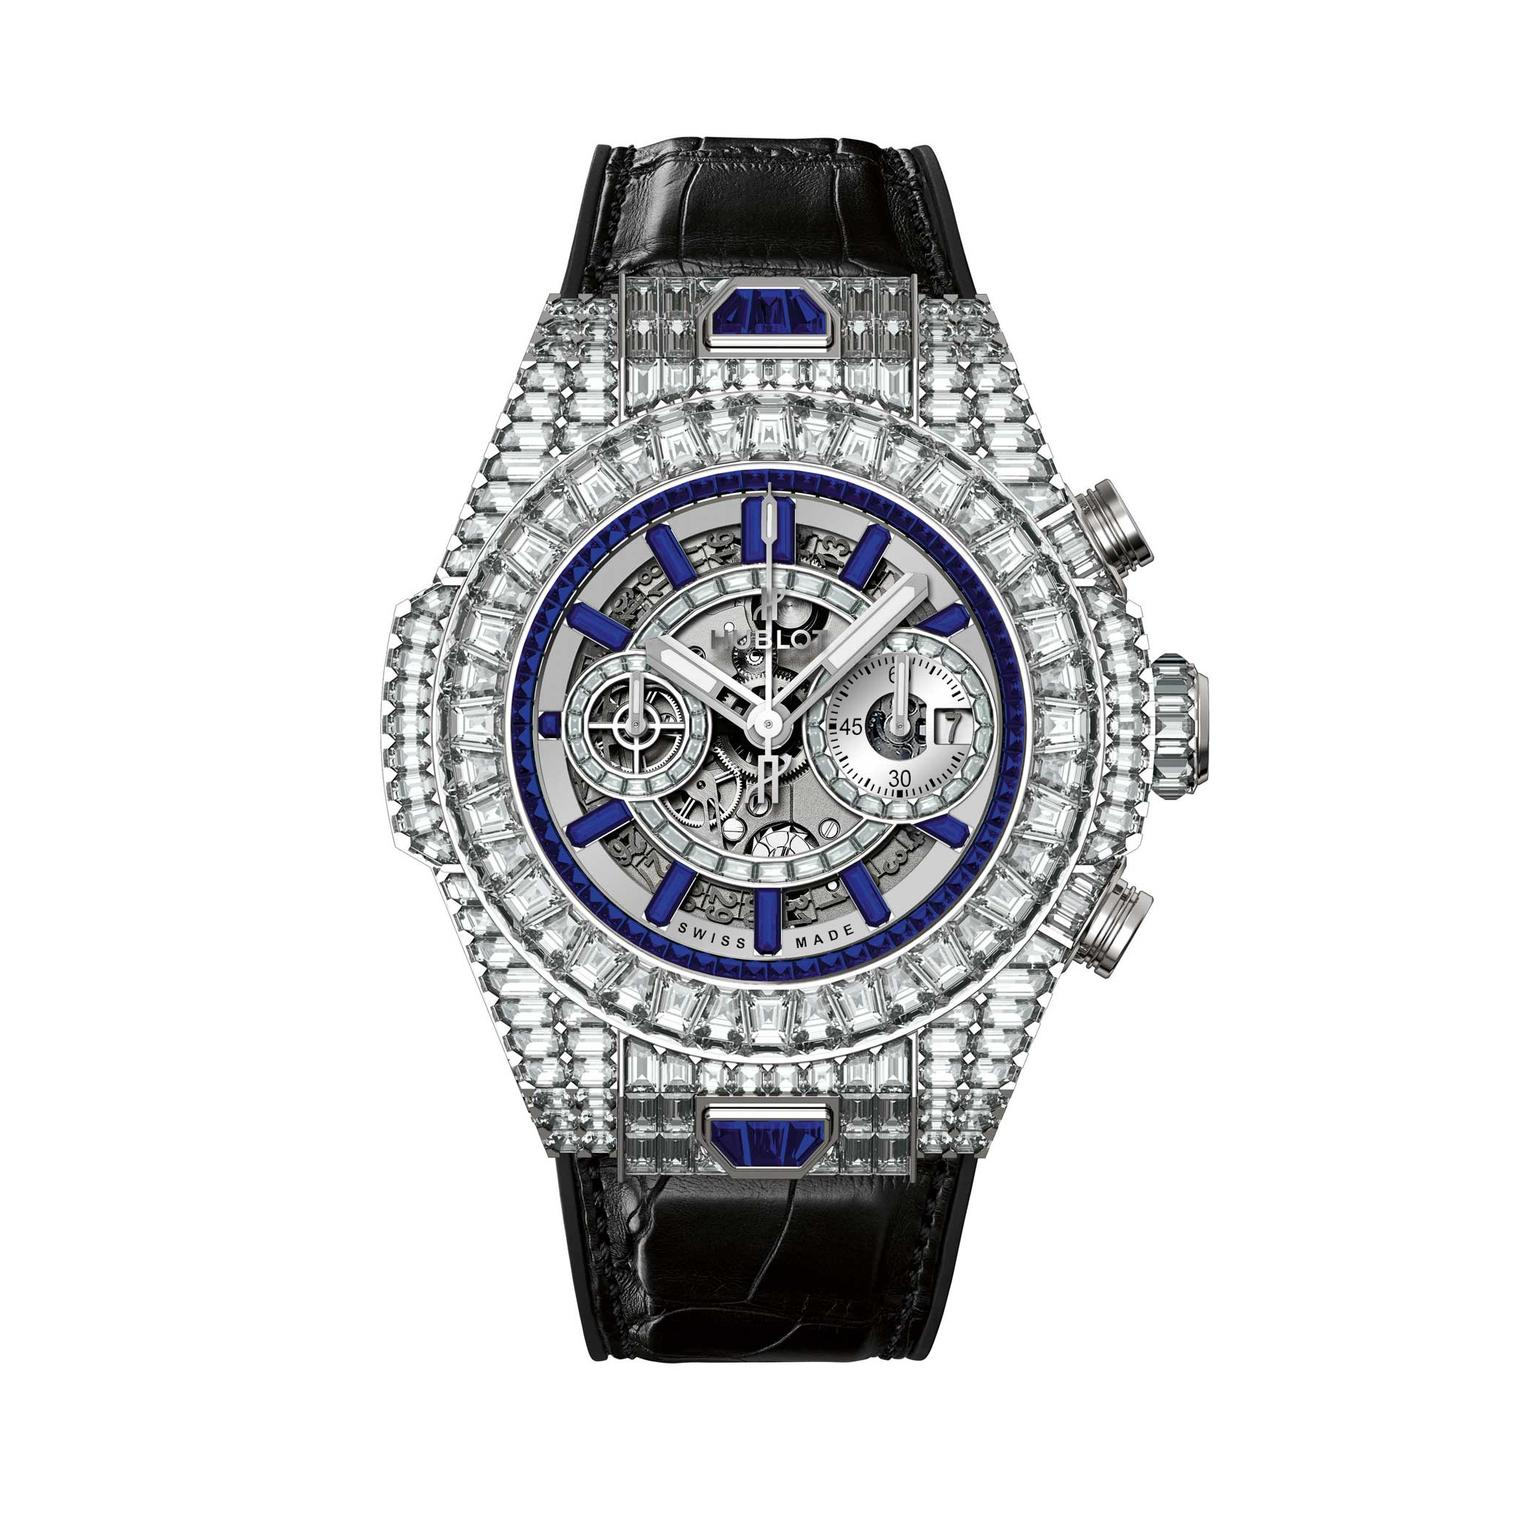 Hublot Big Bang 10 Year HJ with sapphires and diamonds